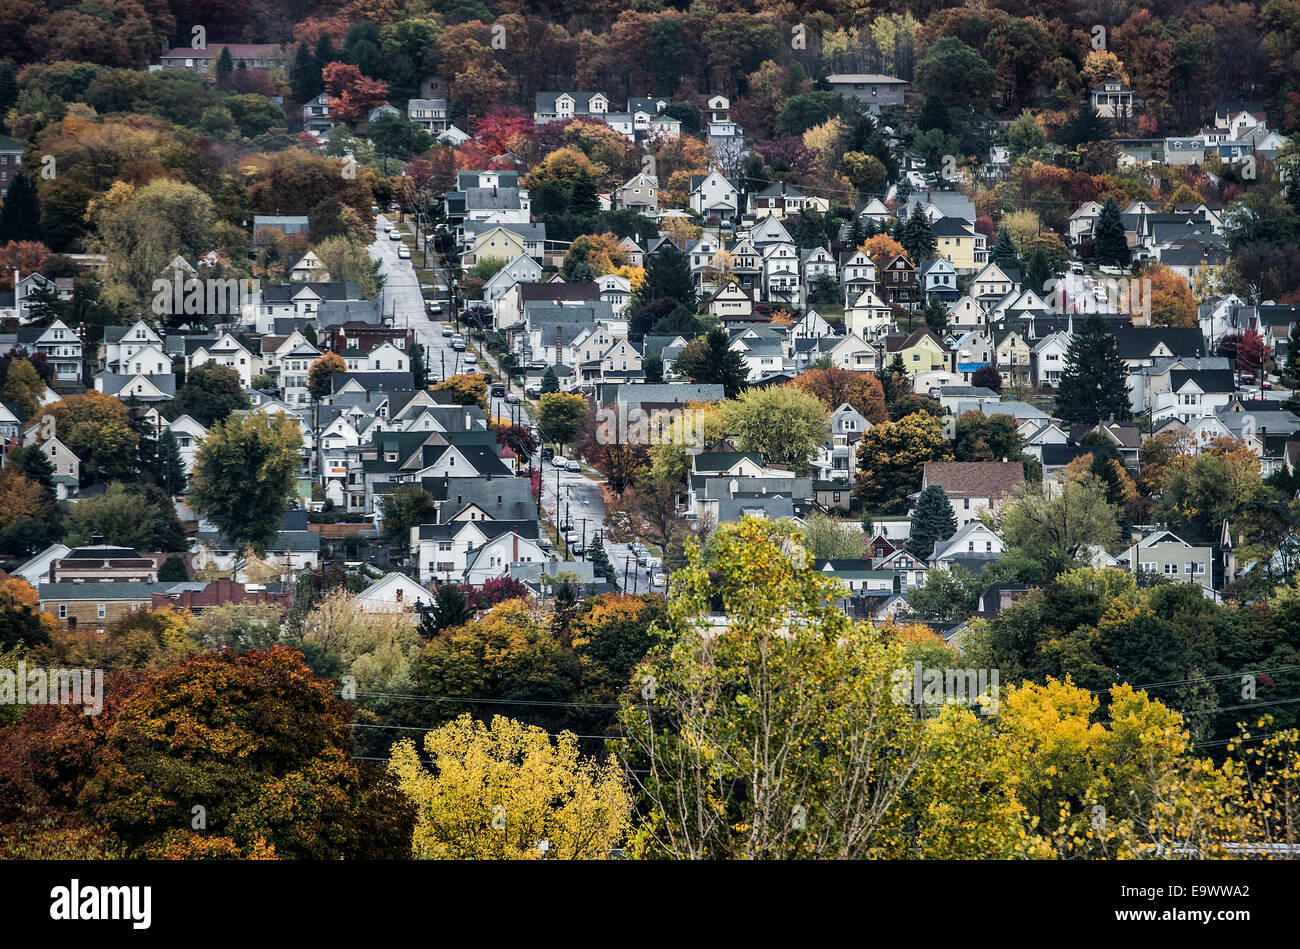 Cluster of houses, Scranton, Pennsylvania, USA - Stock Image